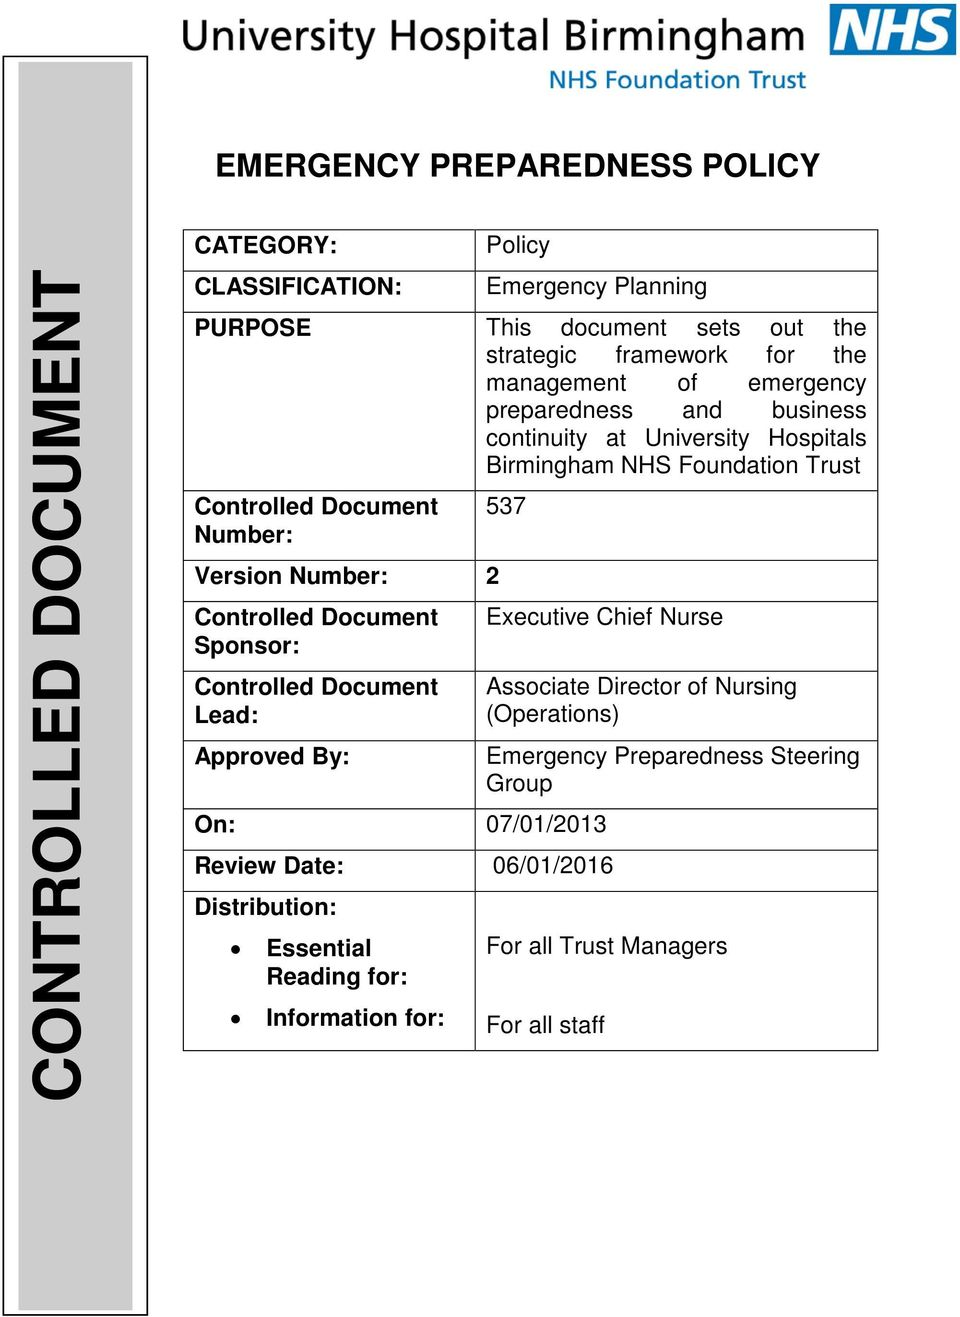 Version Number: 2 Controlled Document Sponsor: Controlled Document Lead: Approved By: 537 Executive Chief Nurse On: 07/01/2013 Review Date: 06/01/2016